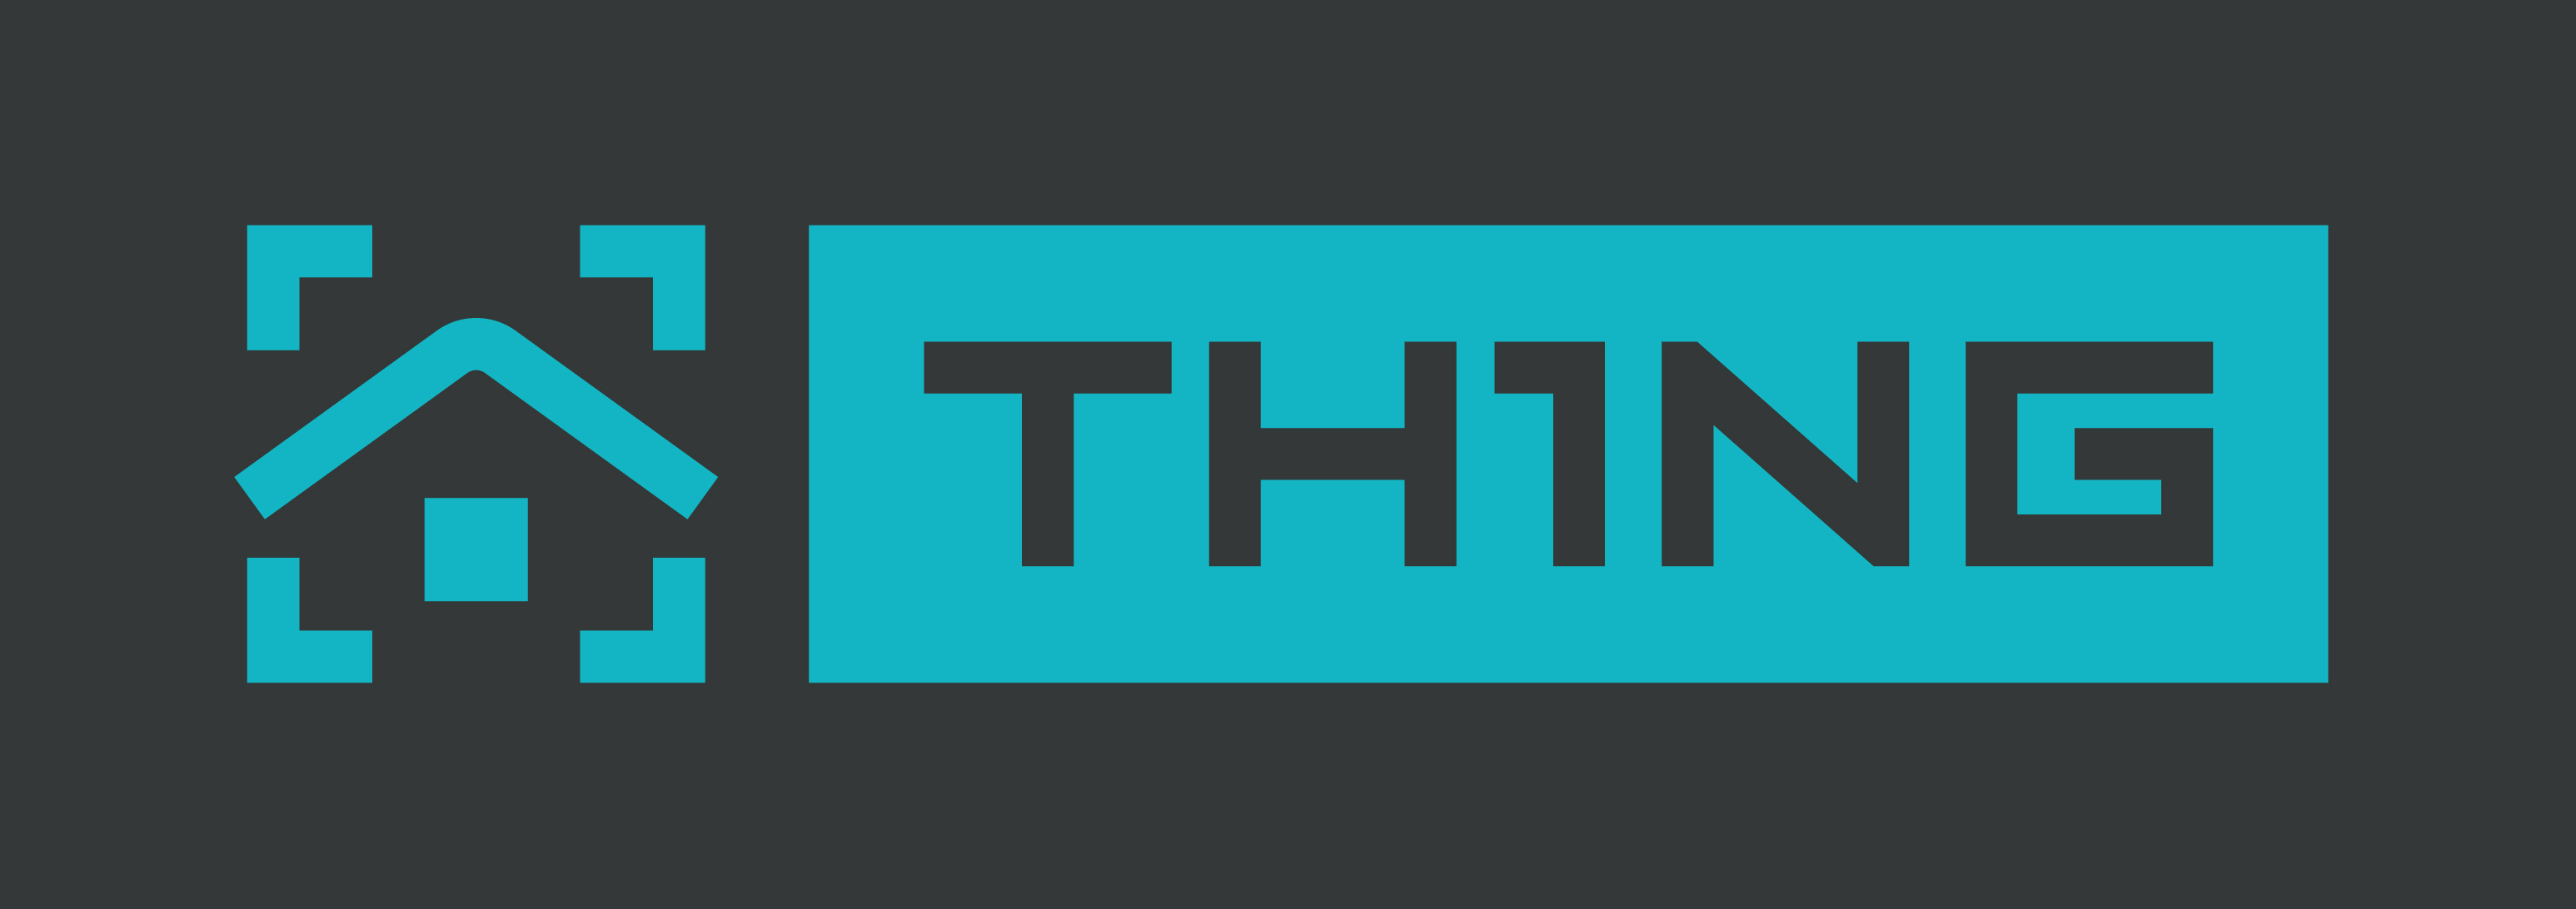 TH1NG_Logo_Turquoise_on_Dark_Grey